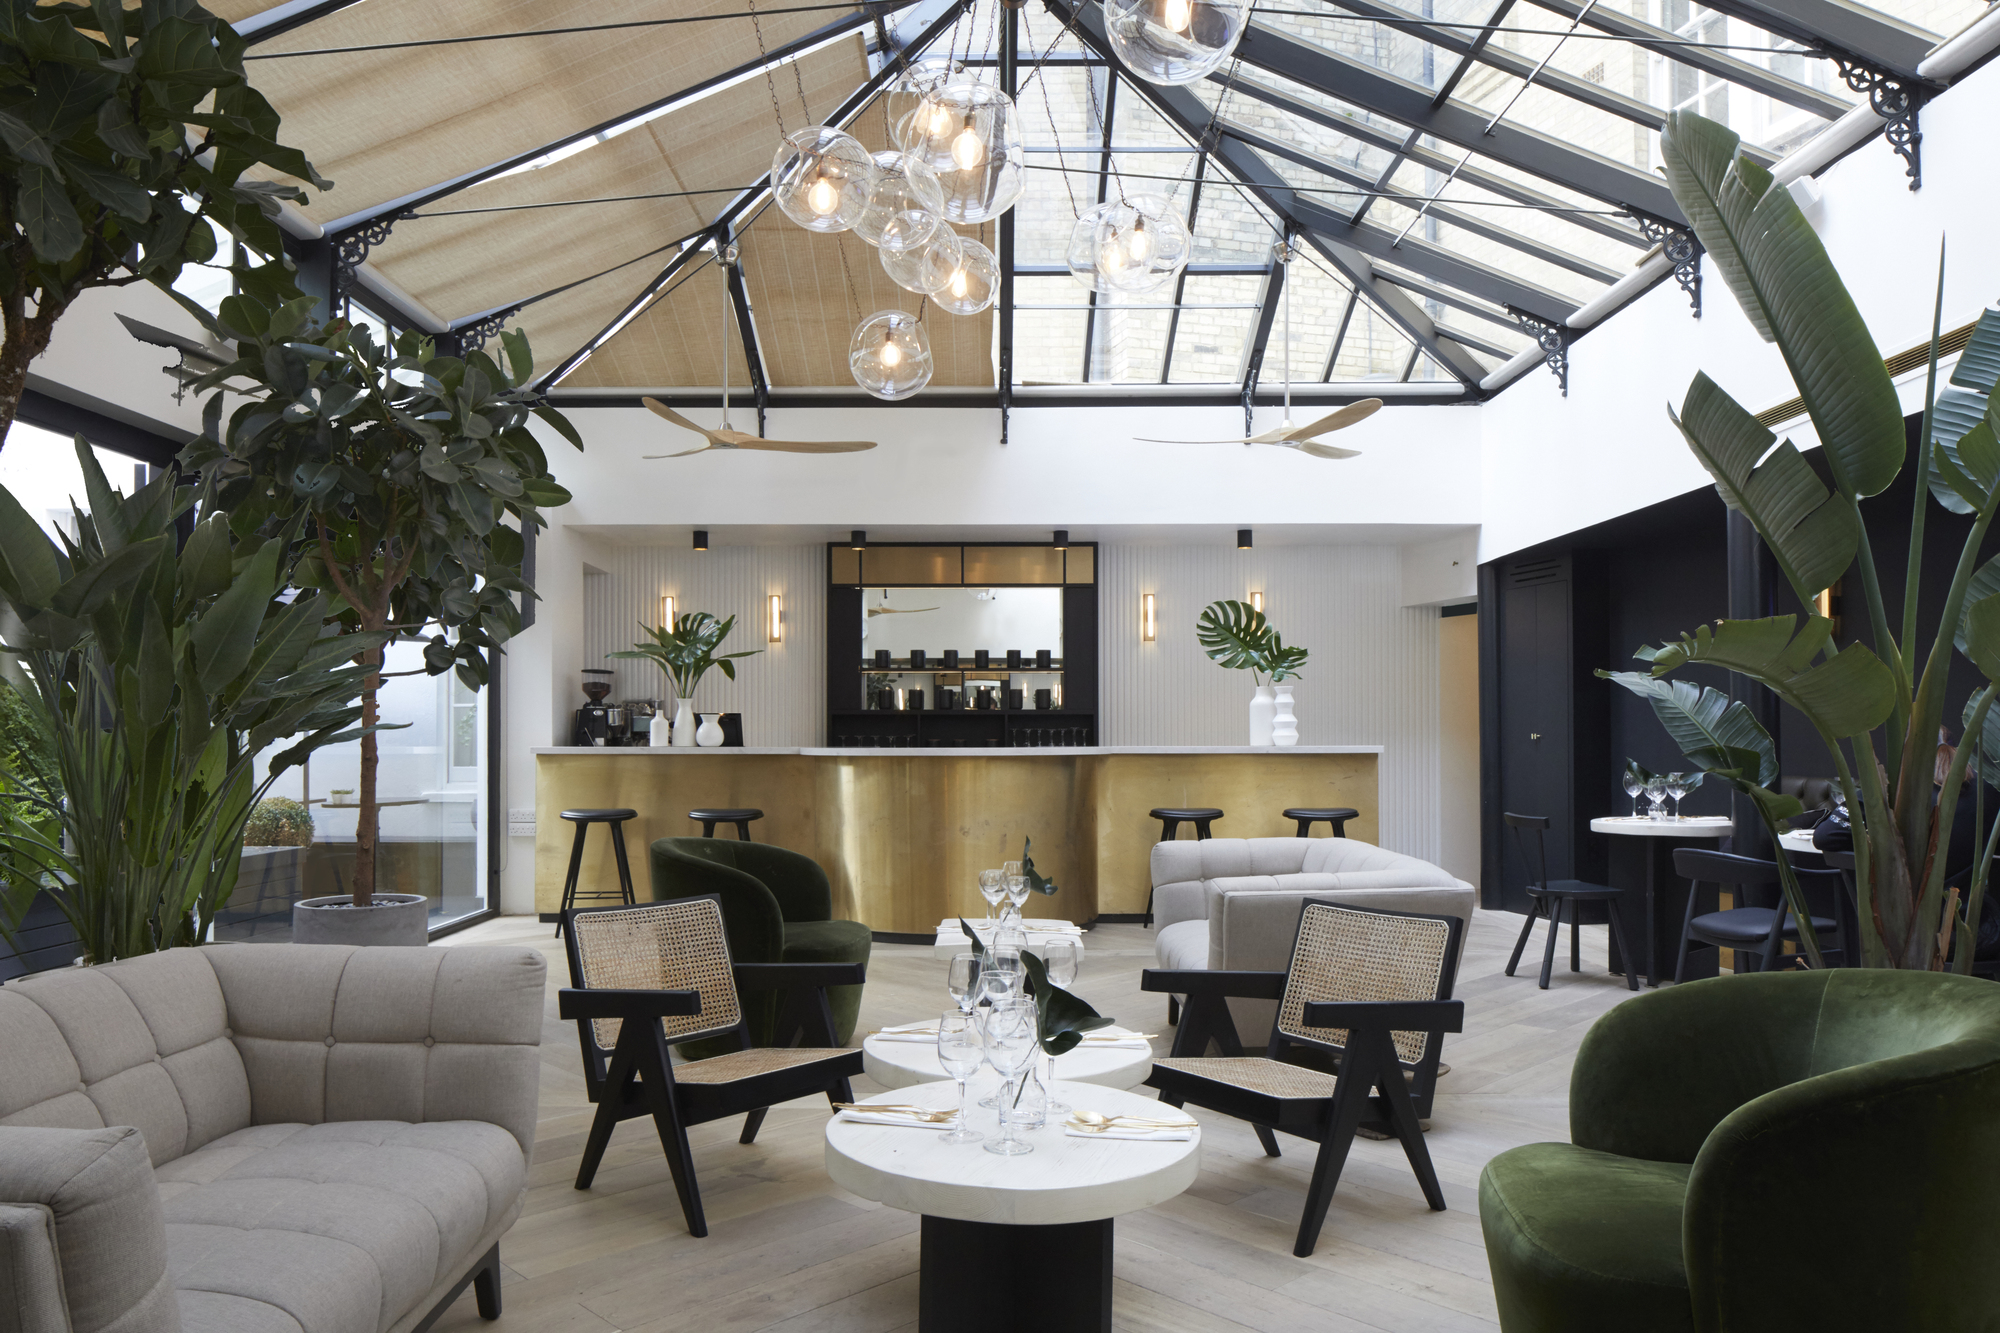 Mychelsea boutique hotel design haus liberty archdaily for Hotel design london